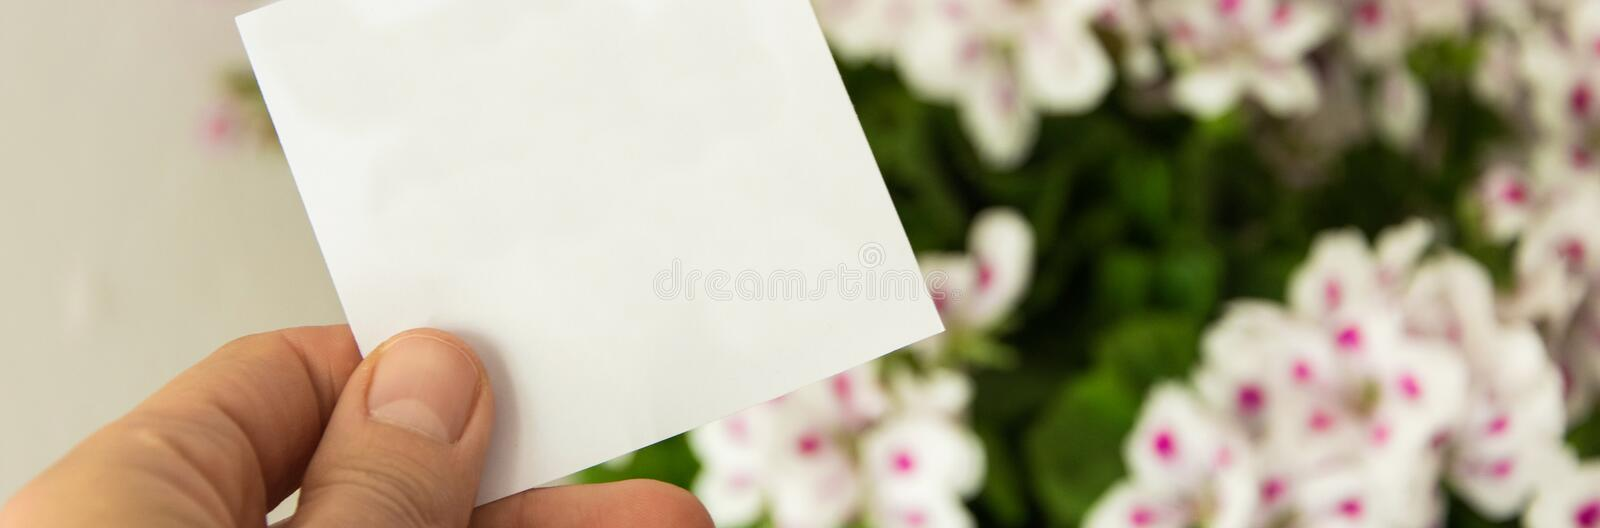 Front view of womans hand holding white card, Beautiful fresh flowers in background. Front view of womans hand holding white greeting card, Beautiful fresh royalty free stock image